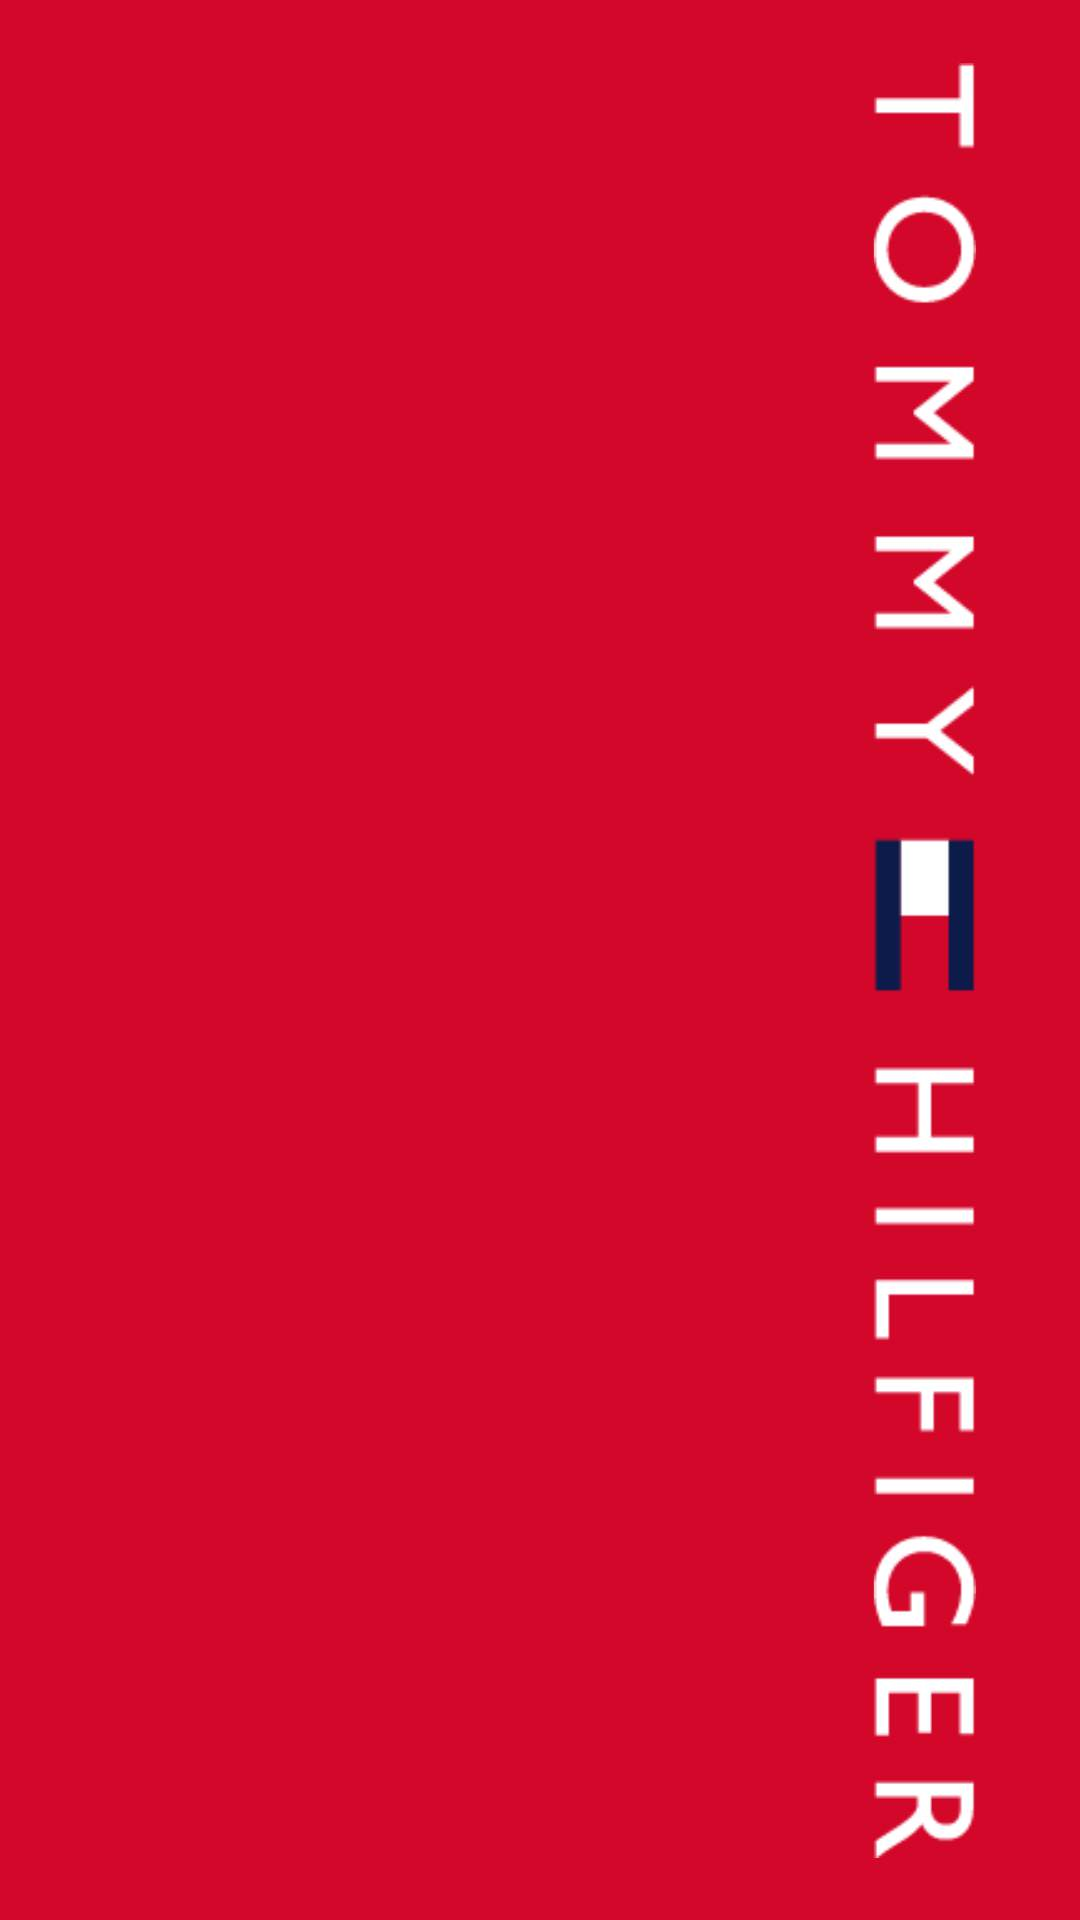 tommyhilfiger15 - TOMMY HILFIGER/トミー・ヒルフィガーの高画質スマホ壁紙20枚 [iPhone&Androidに対応]